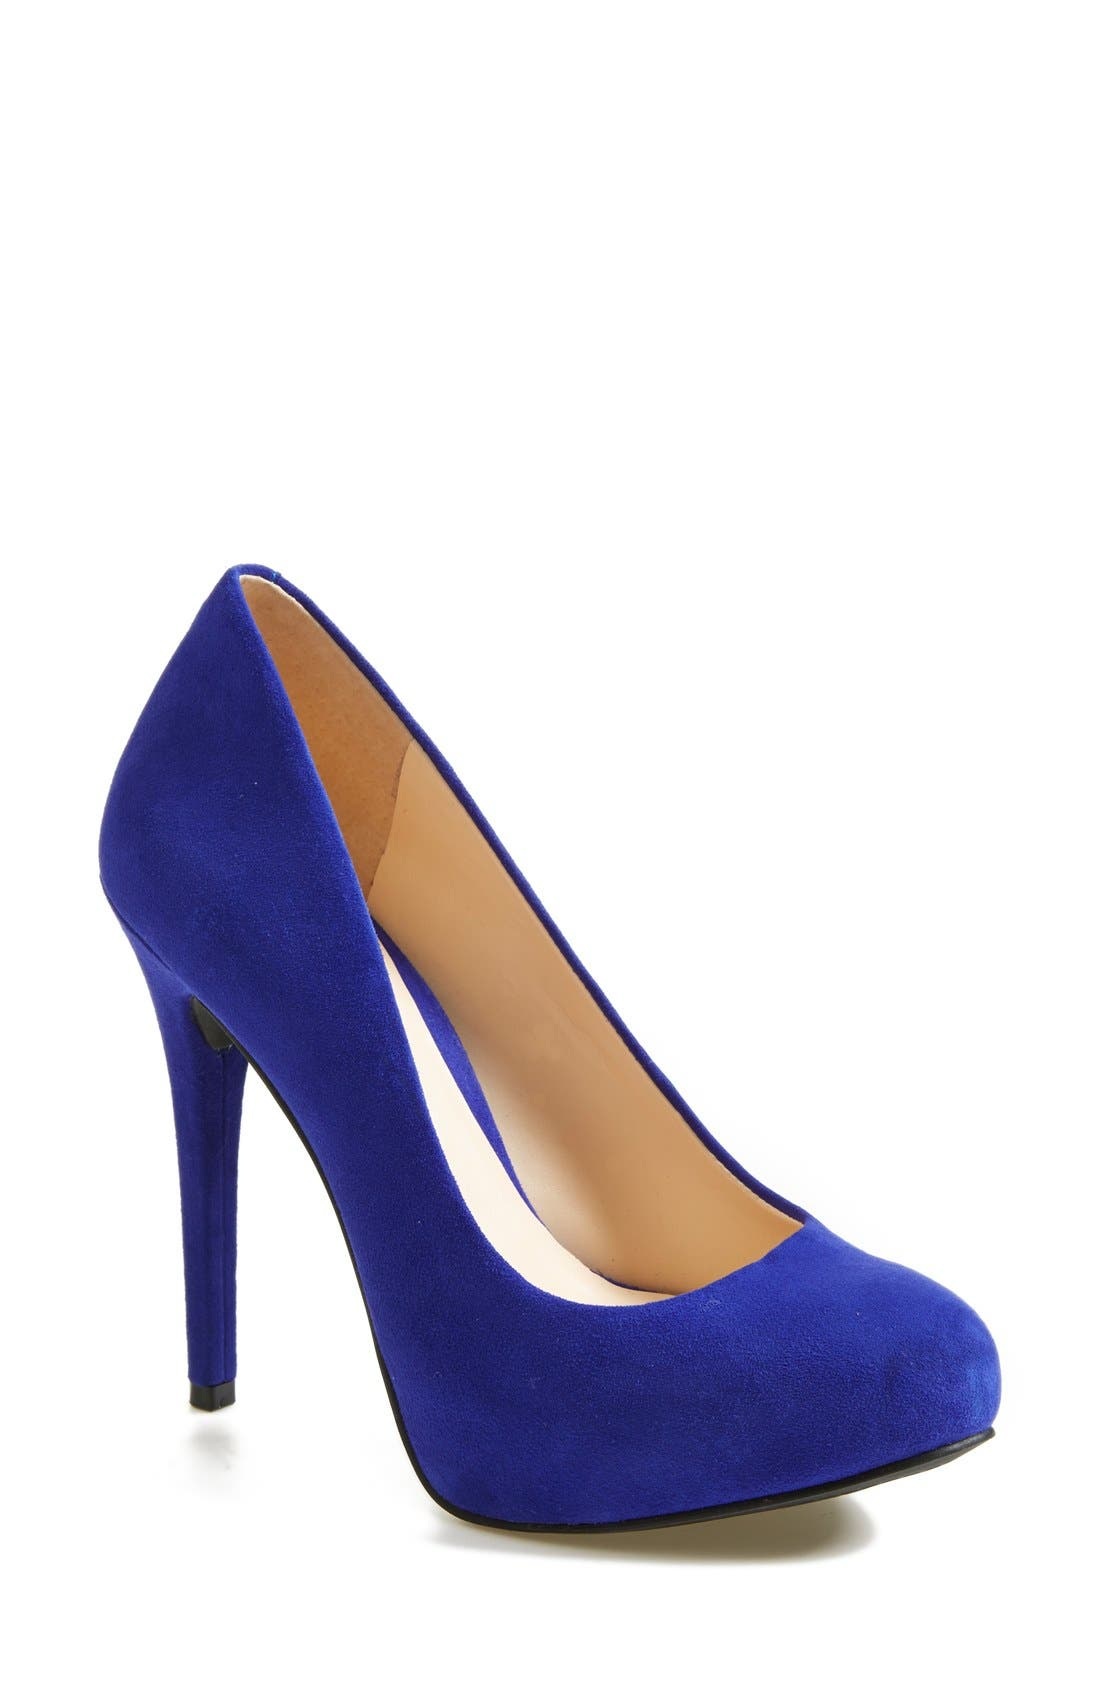 Main Image - Jessica Simpson 'Natalli' Pump (Women)